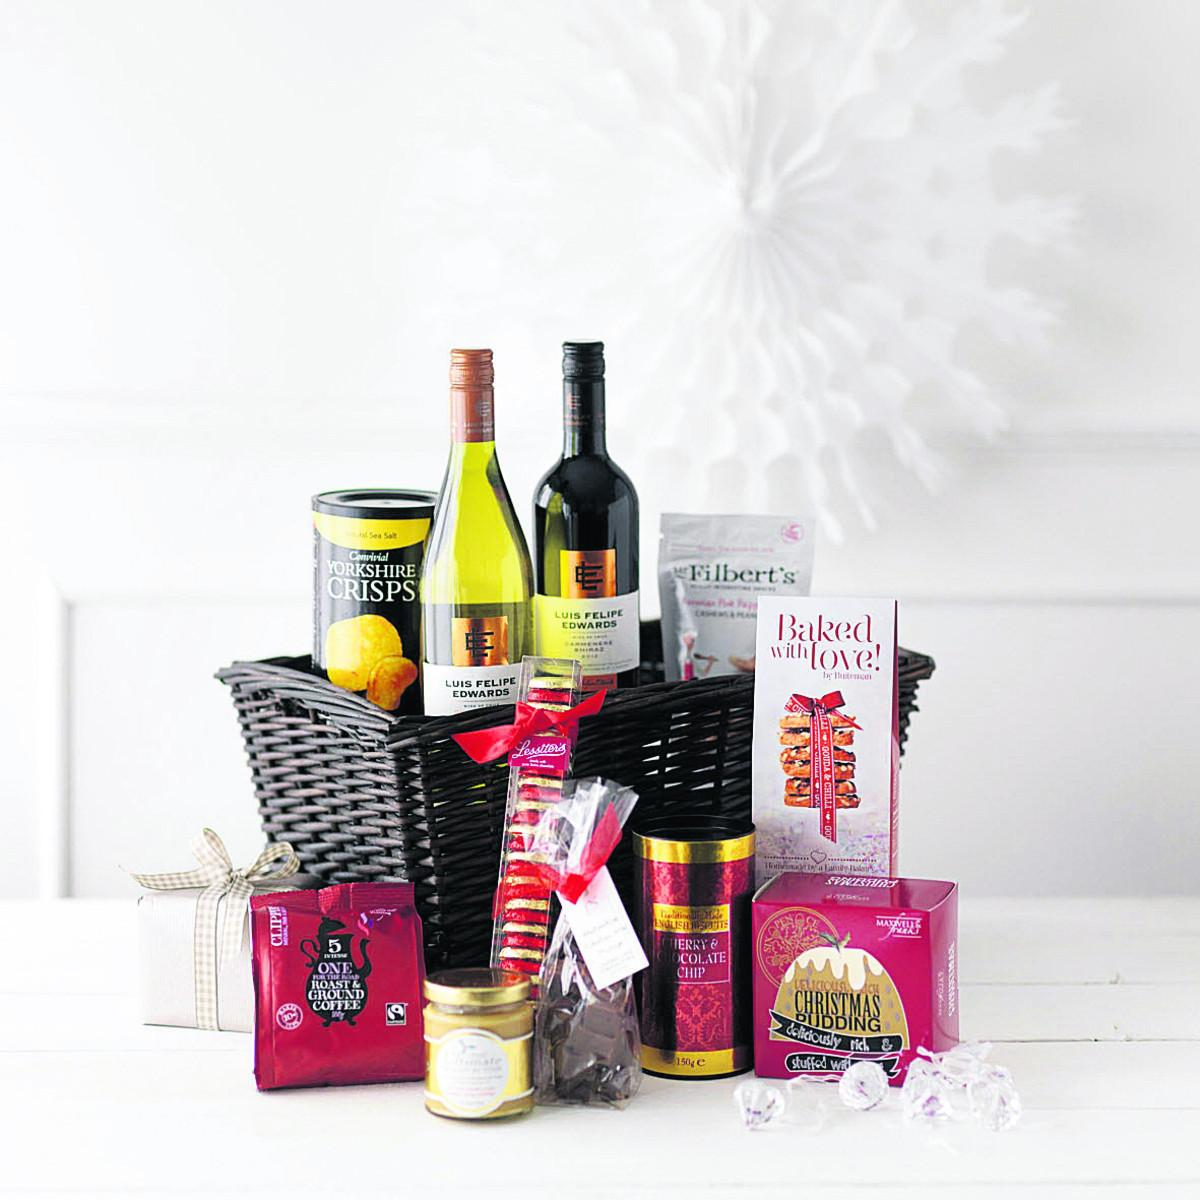 Festive treats in the hamper oxford mail festive treats in the hamper solutioingenieria Image collections